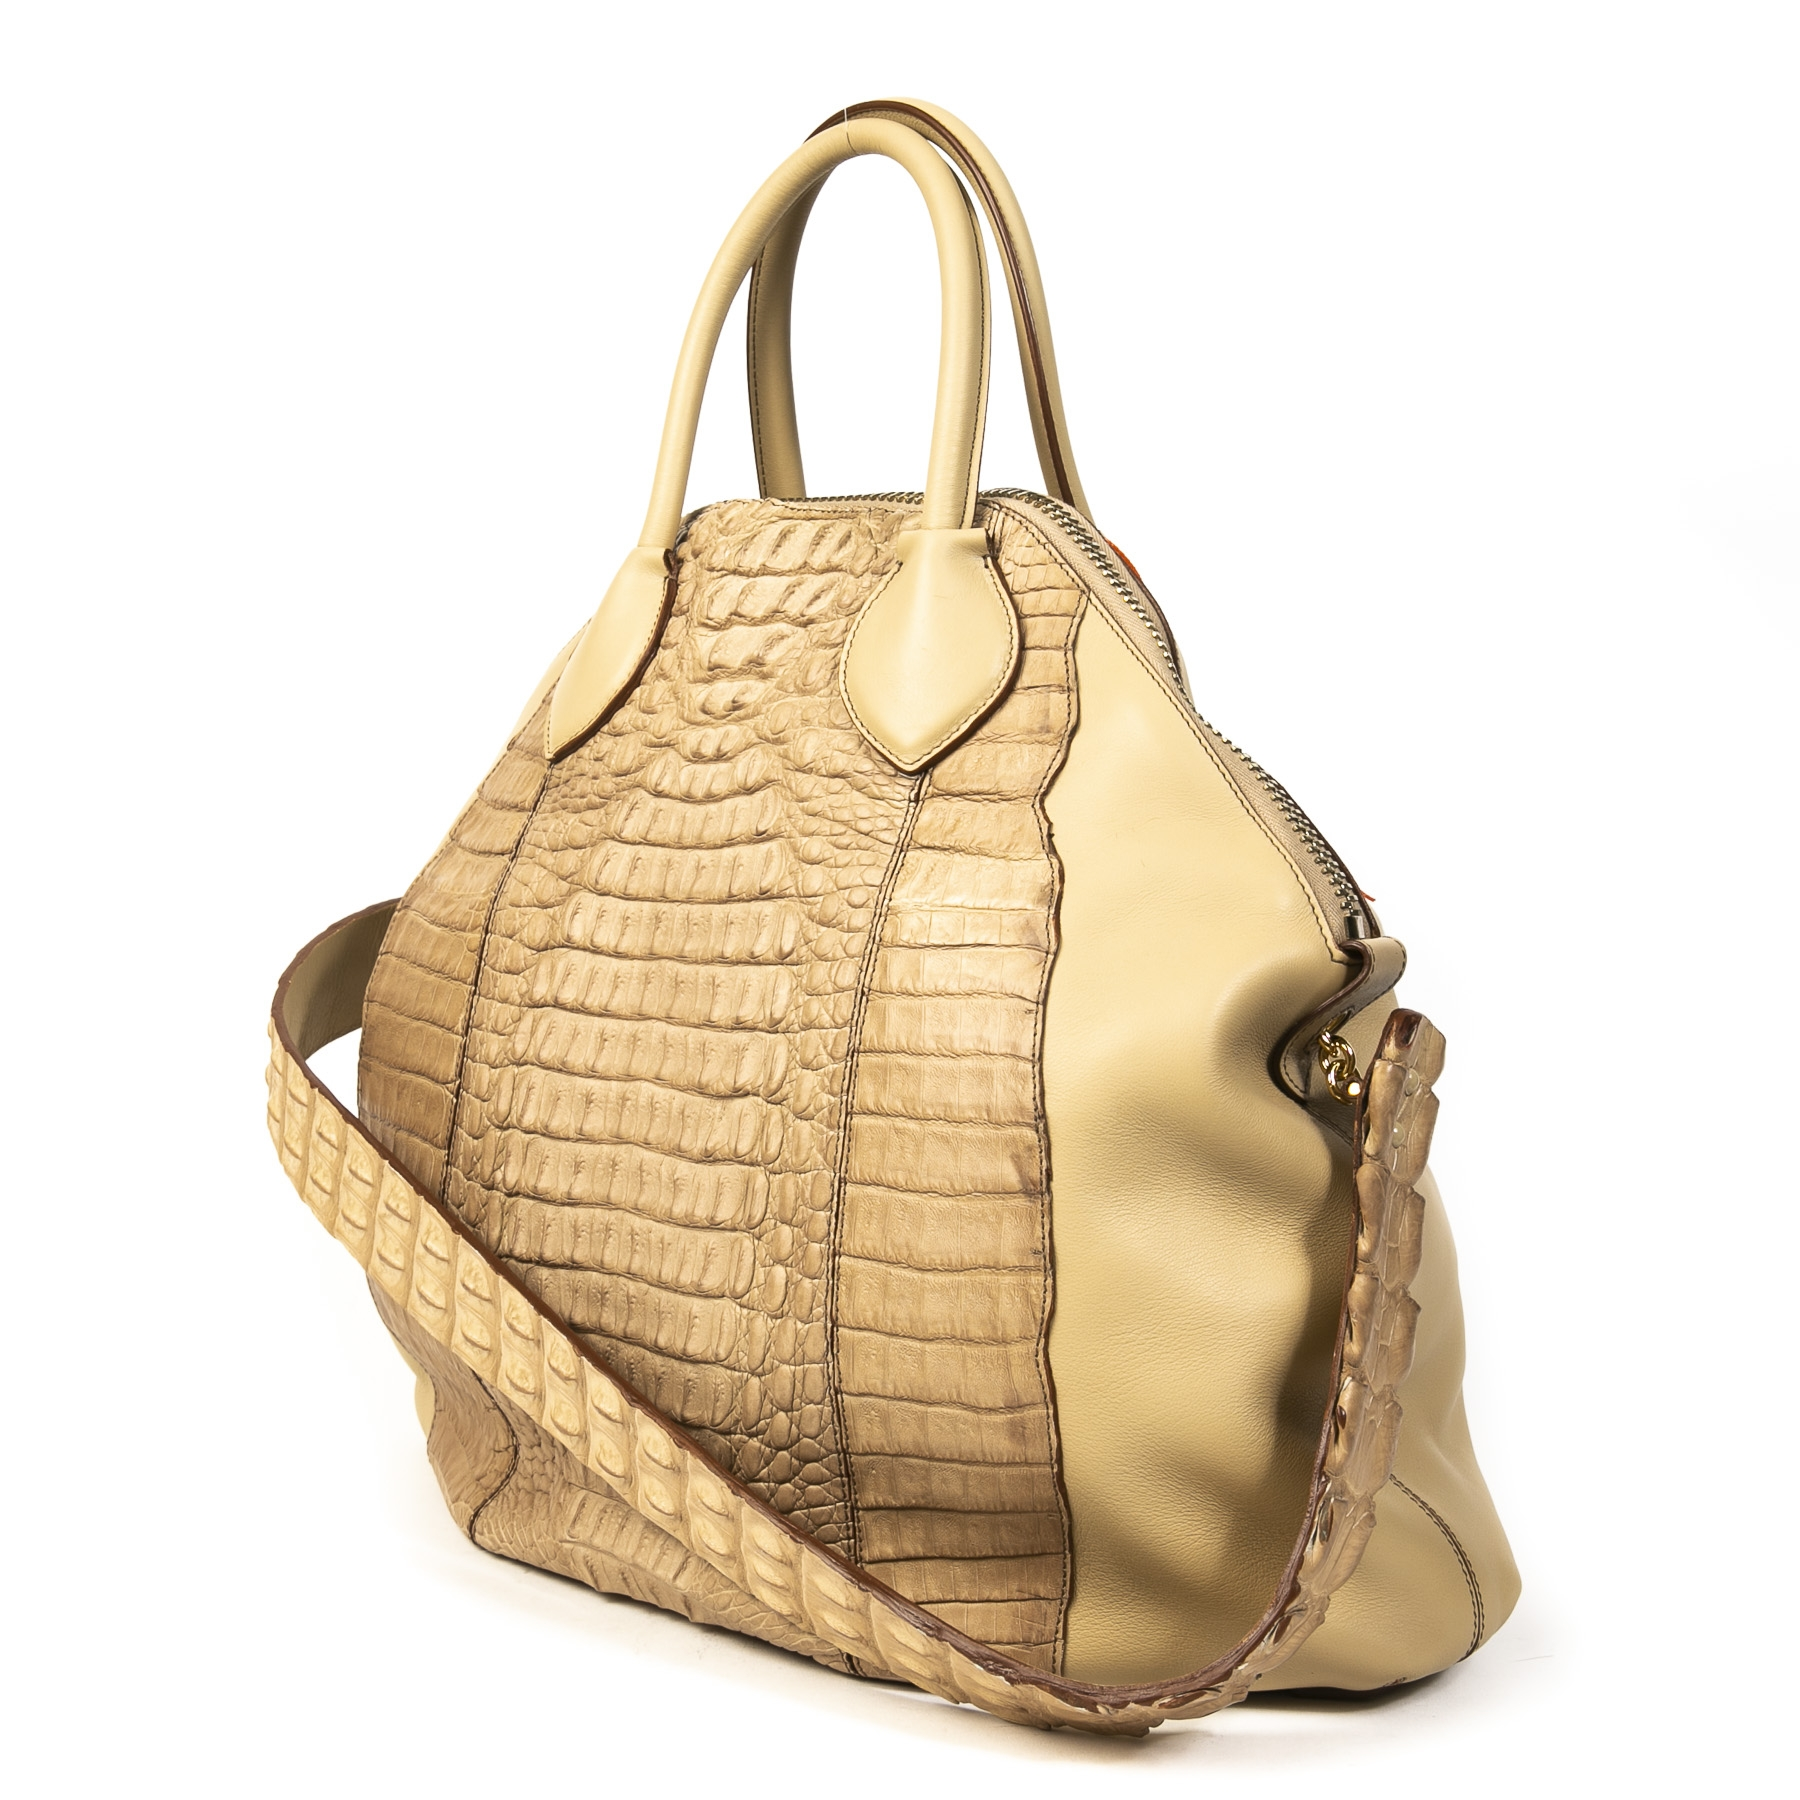 Authentieke Tweedehands Roberto Cavalli Cream Leather Snake Embossed Tote Bag juiste prijs veilig online shoppen luxe merken webshop winkelen Antwerpen België mode fashion